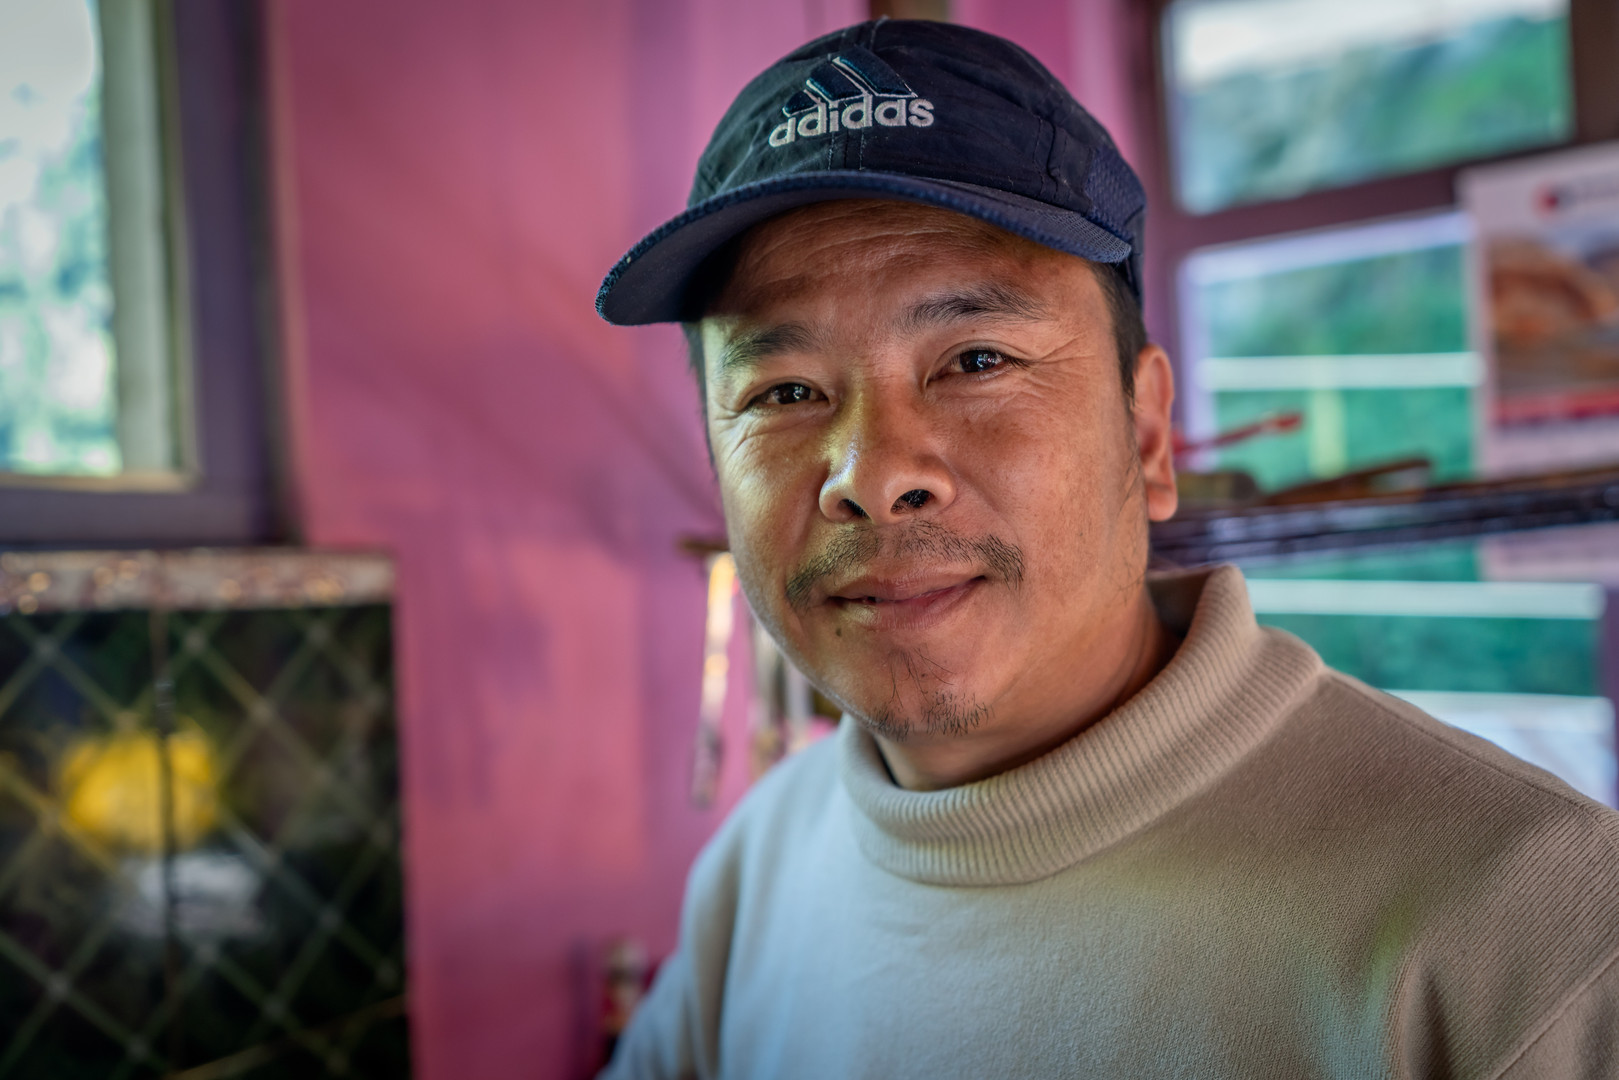 Teahouse owner in Nepal